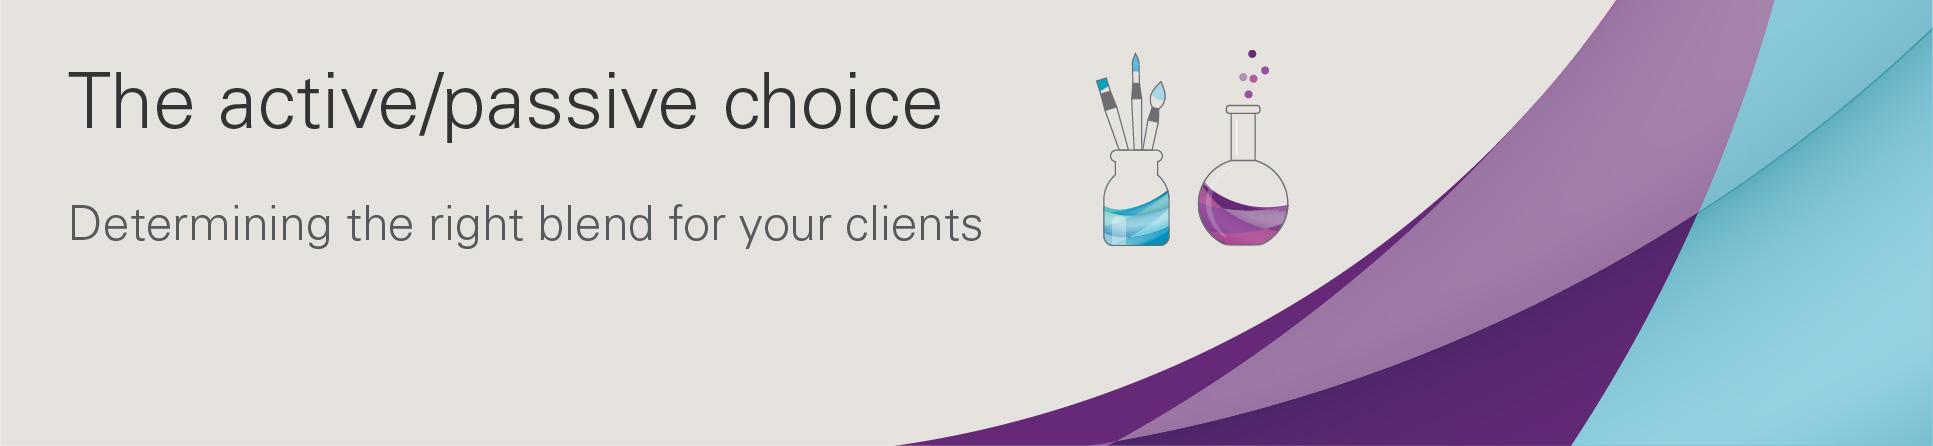 The Active/Passive choice, Determining the right blend for your clients